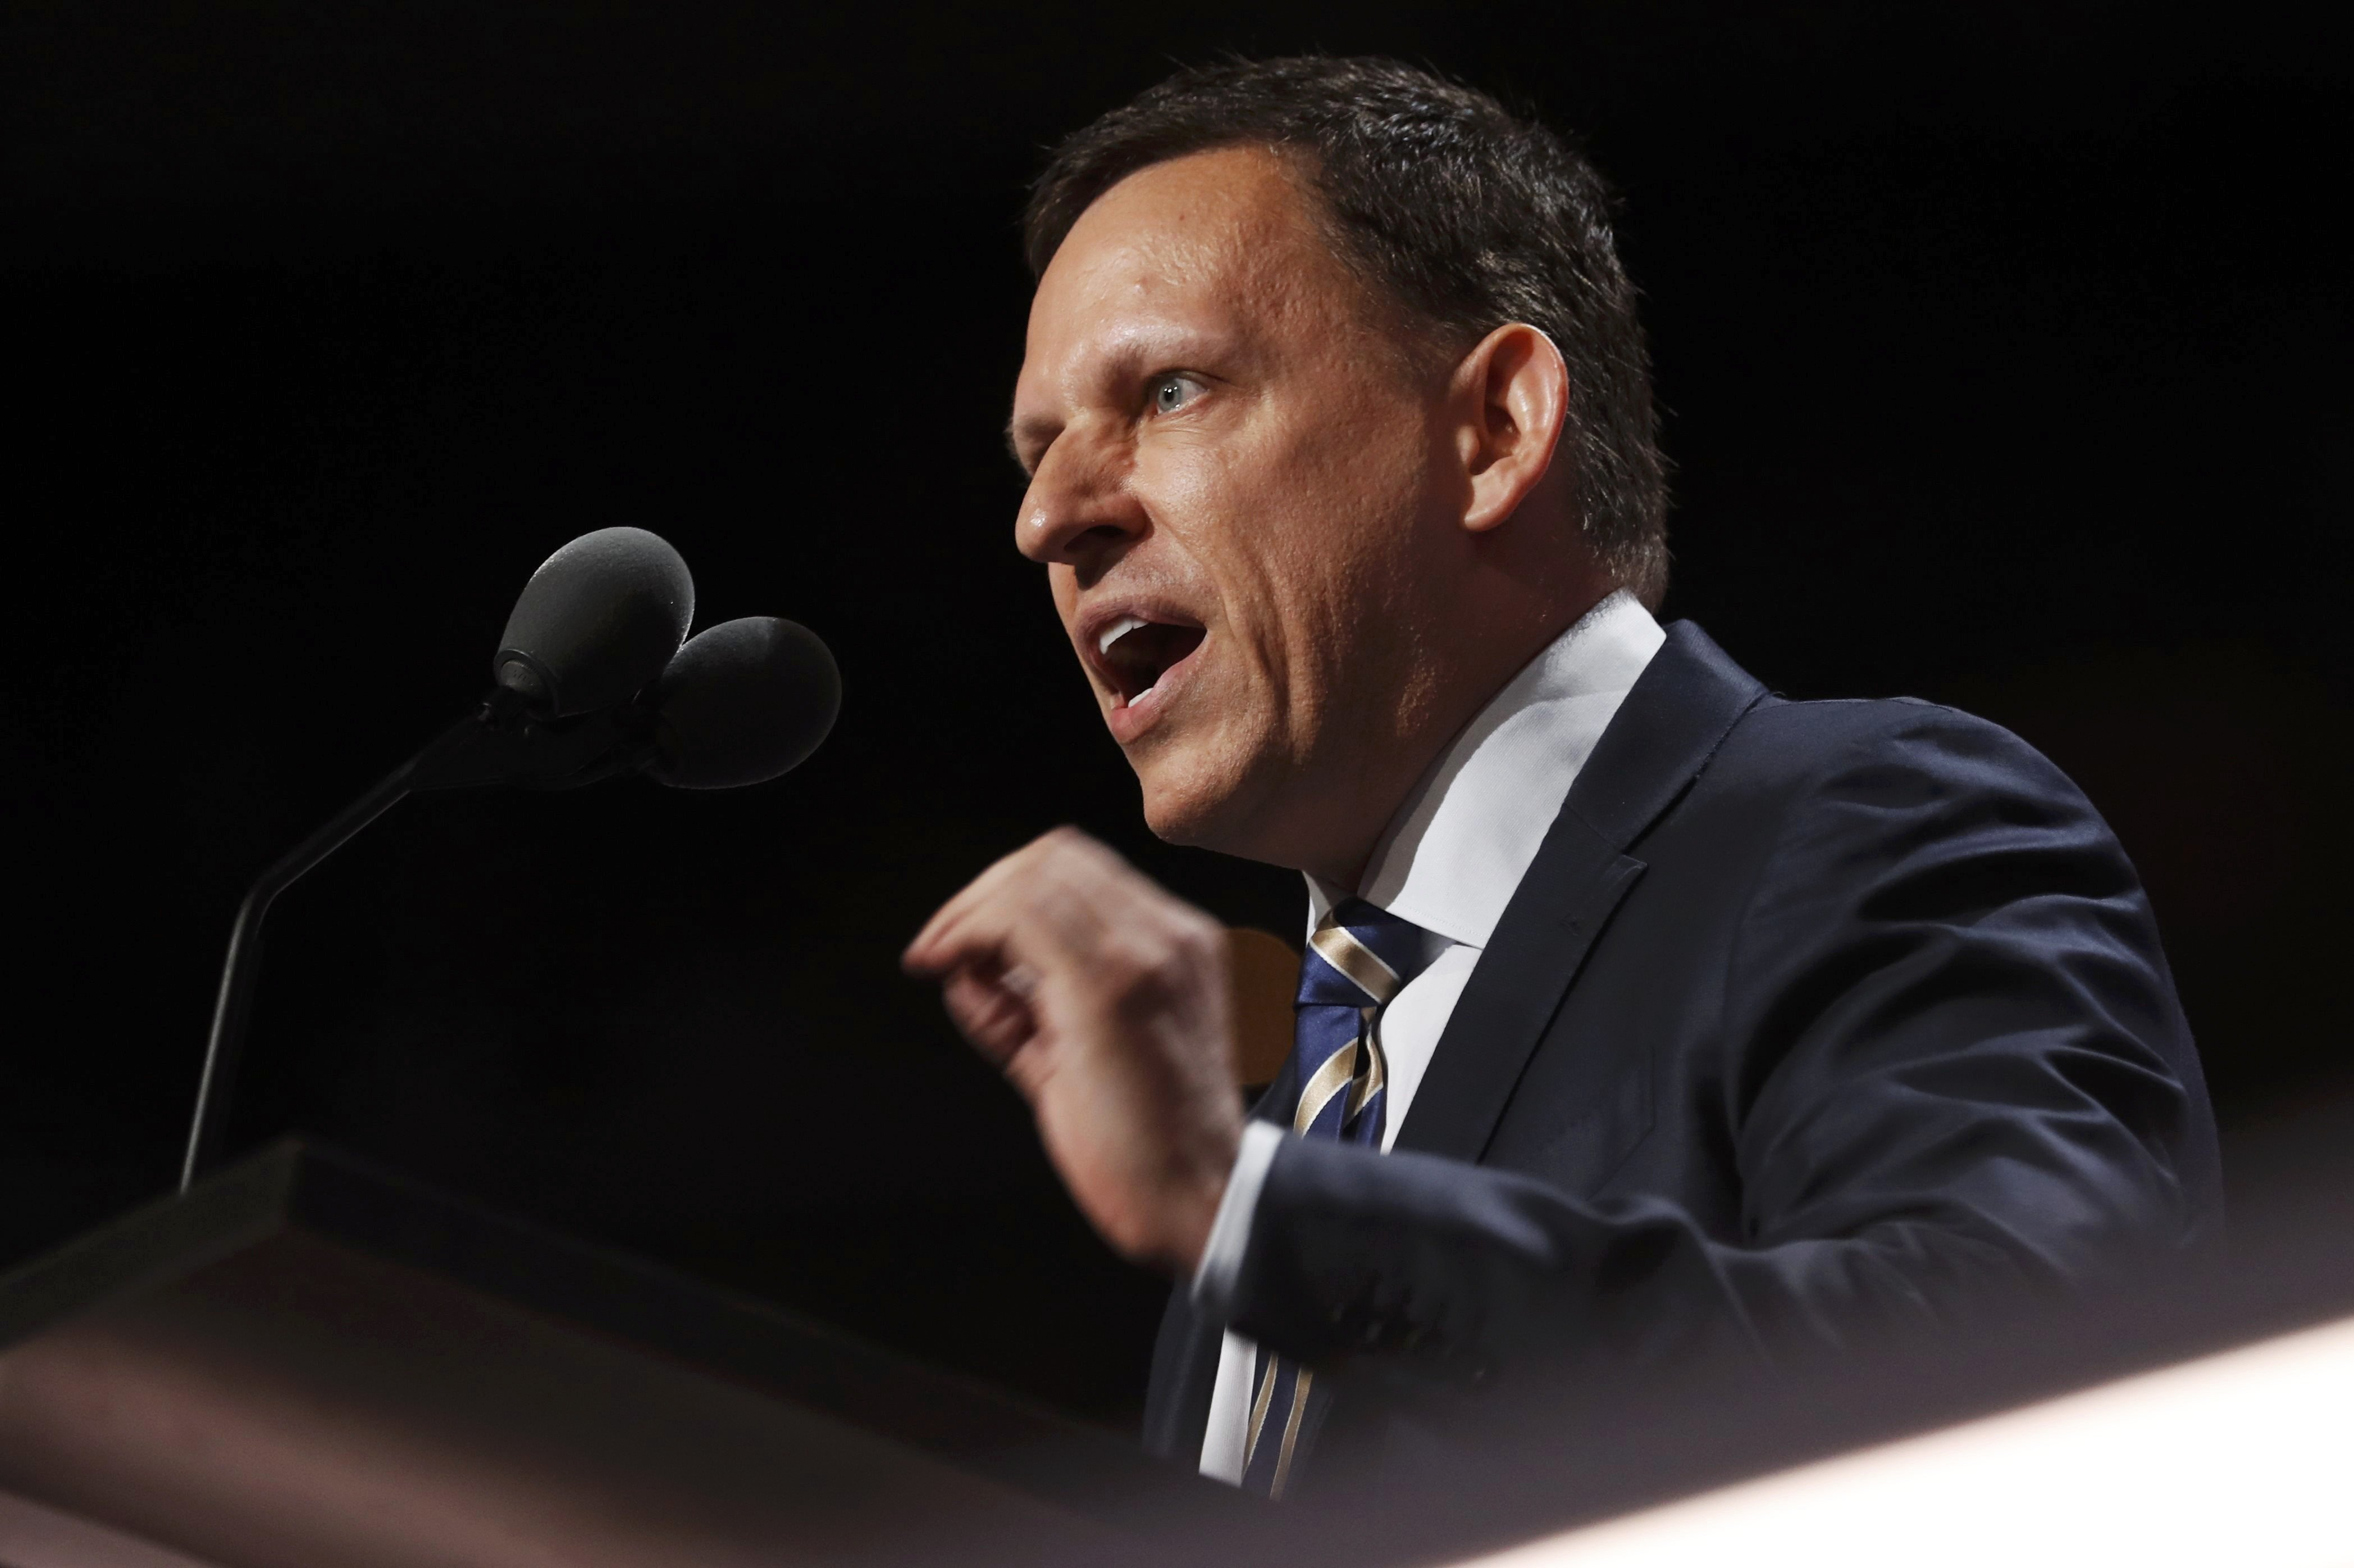 Paypal co-founder Peter Thiel speaks at the Republican National Convention in Cleveland, July 21, 2016.